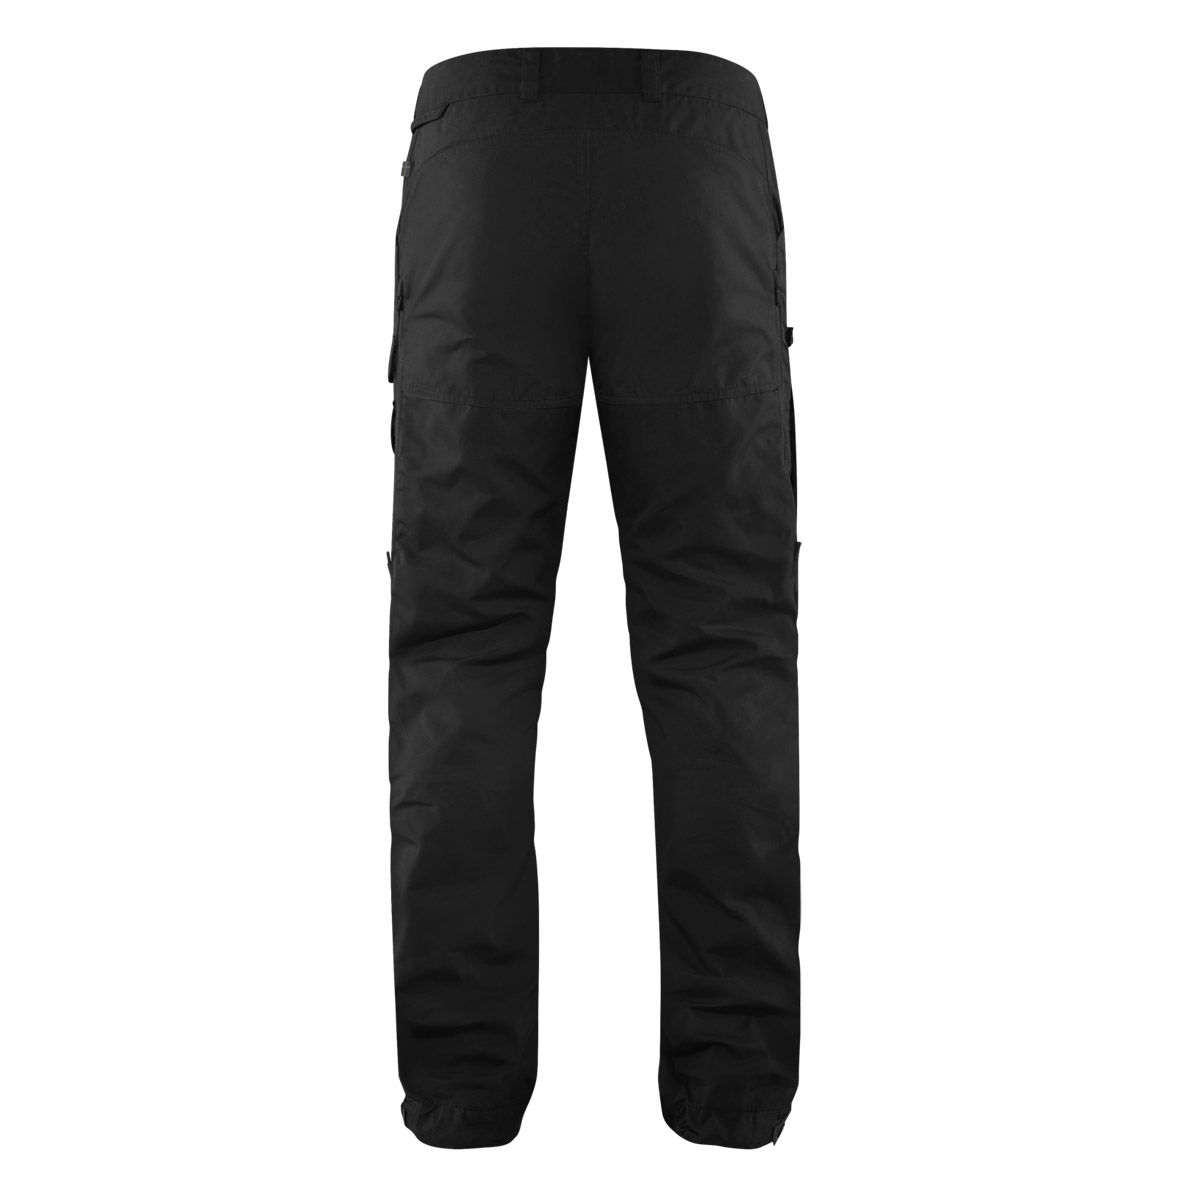 Fjallraven Vidda Pro Ventilated Regular Trousers - Black